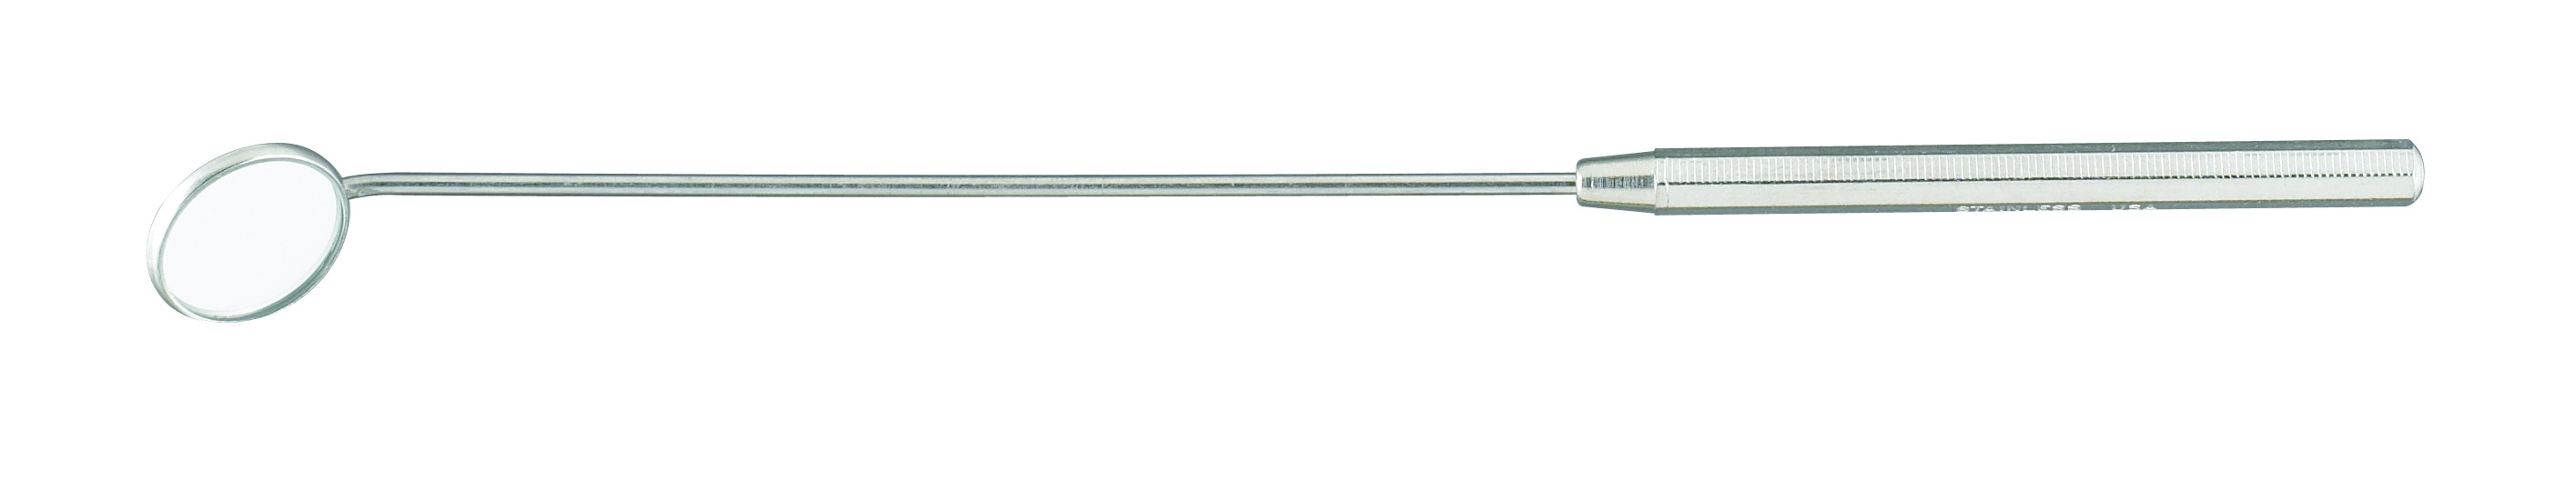 laryngeal-mirror-size-2-with-octagon-threaded-handle-18-mm-23-8-2-miltex.jpg